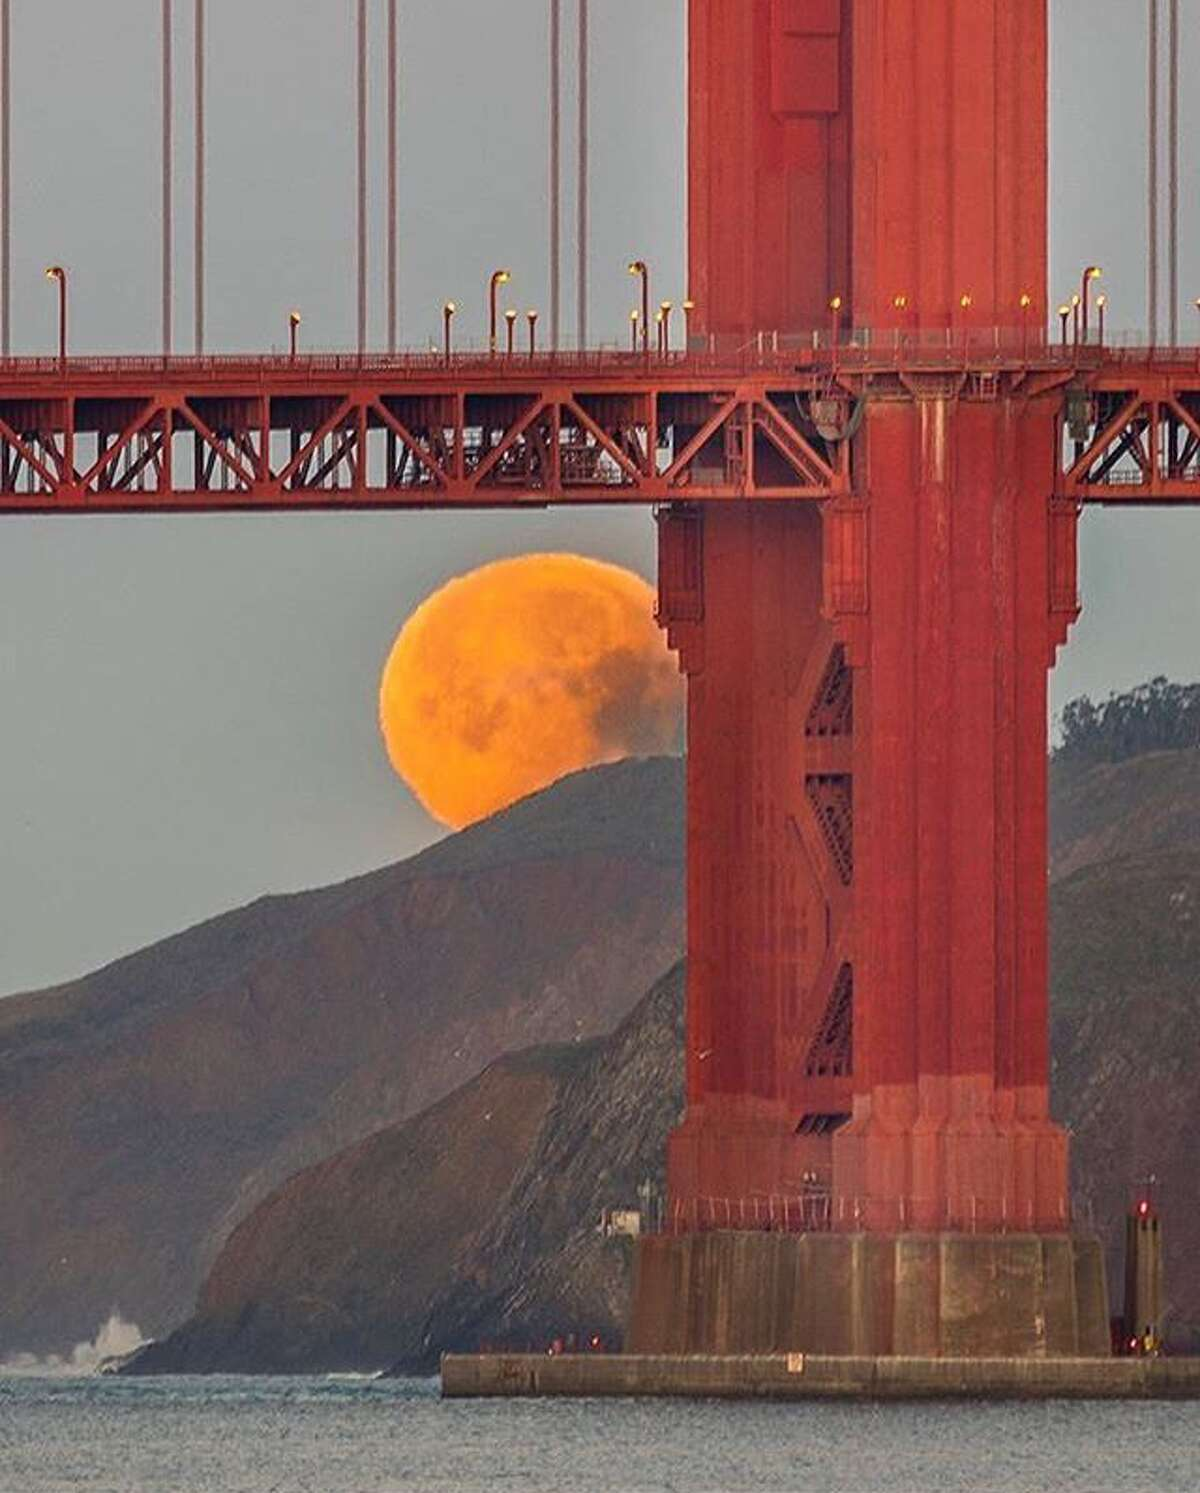 @the415guy 's photo of January's lunar eclipse setting behind the Golden Gate Bridge was the most popular image that was regrammed on SFGate's Instagram.  It was liked 7,800 times.